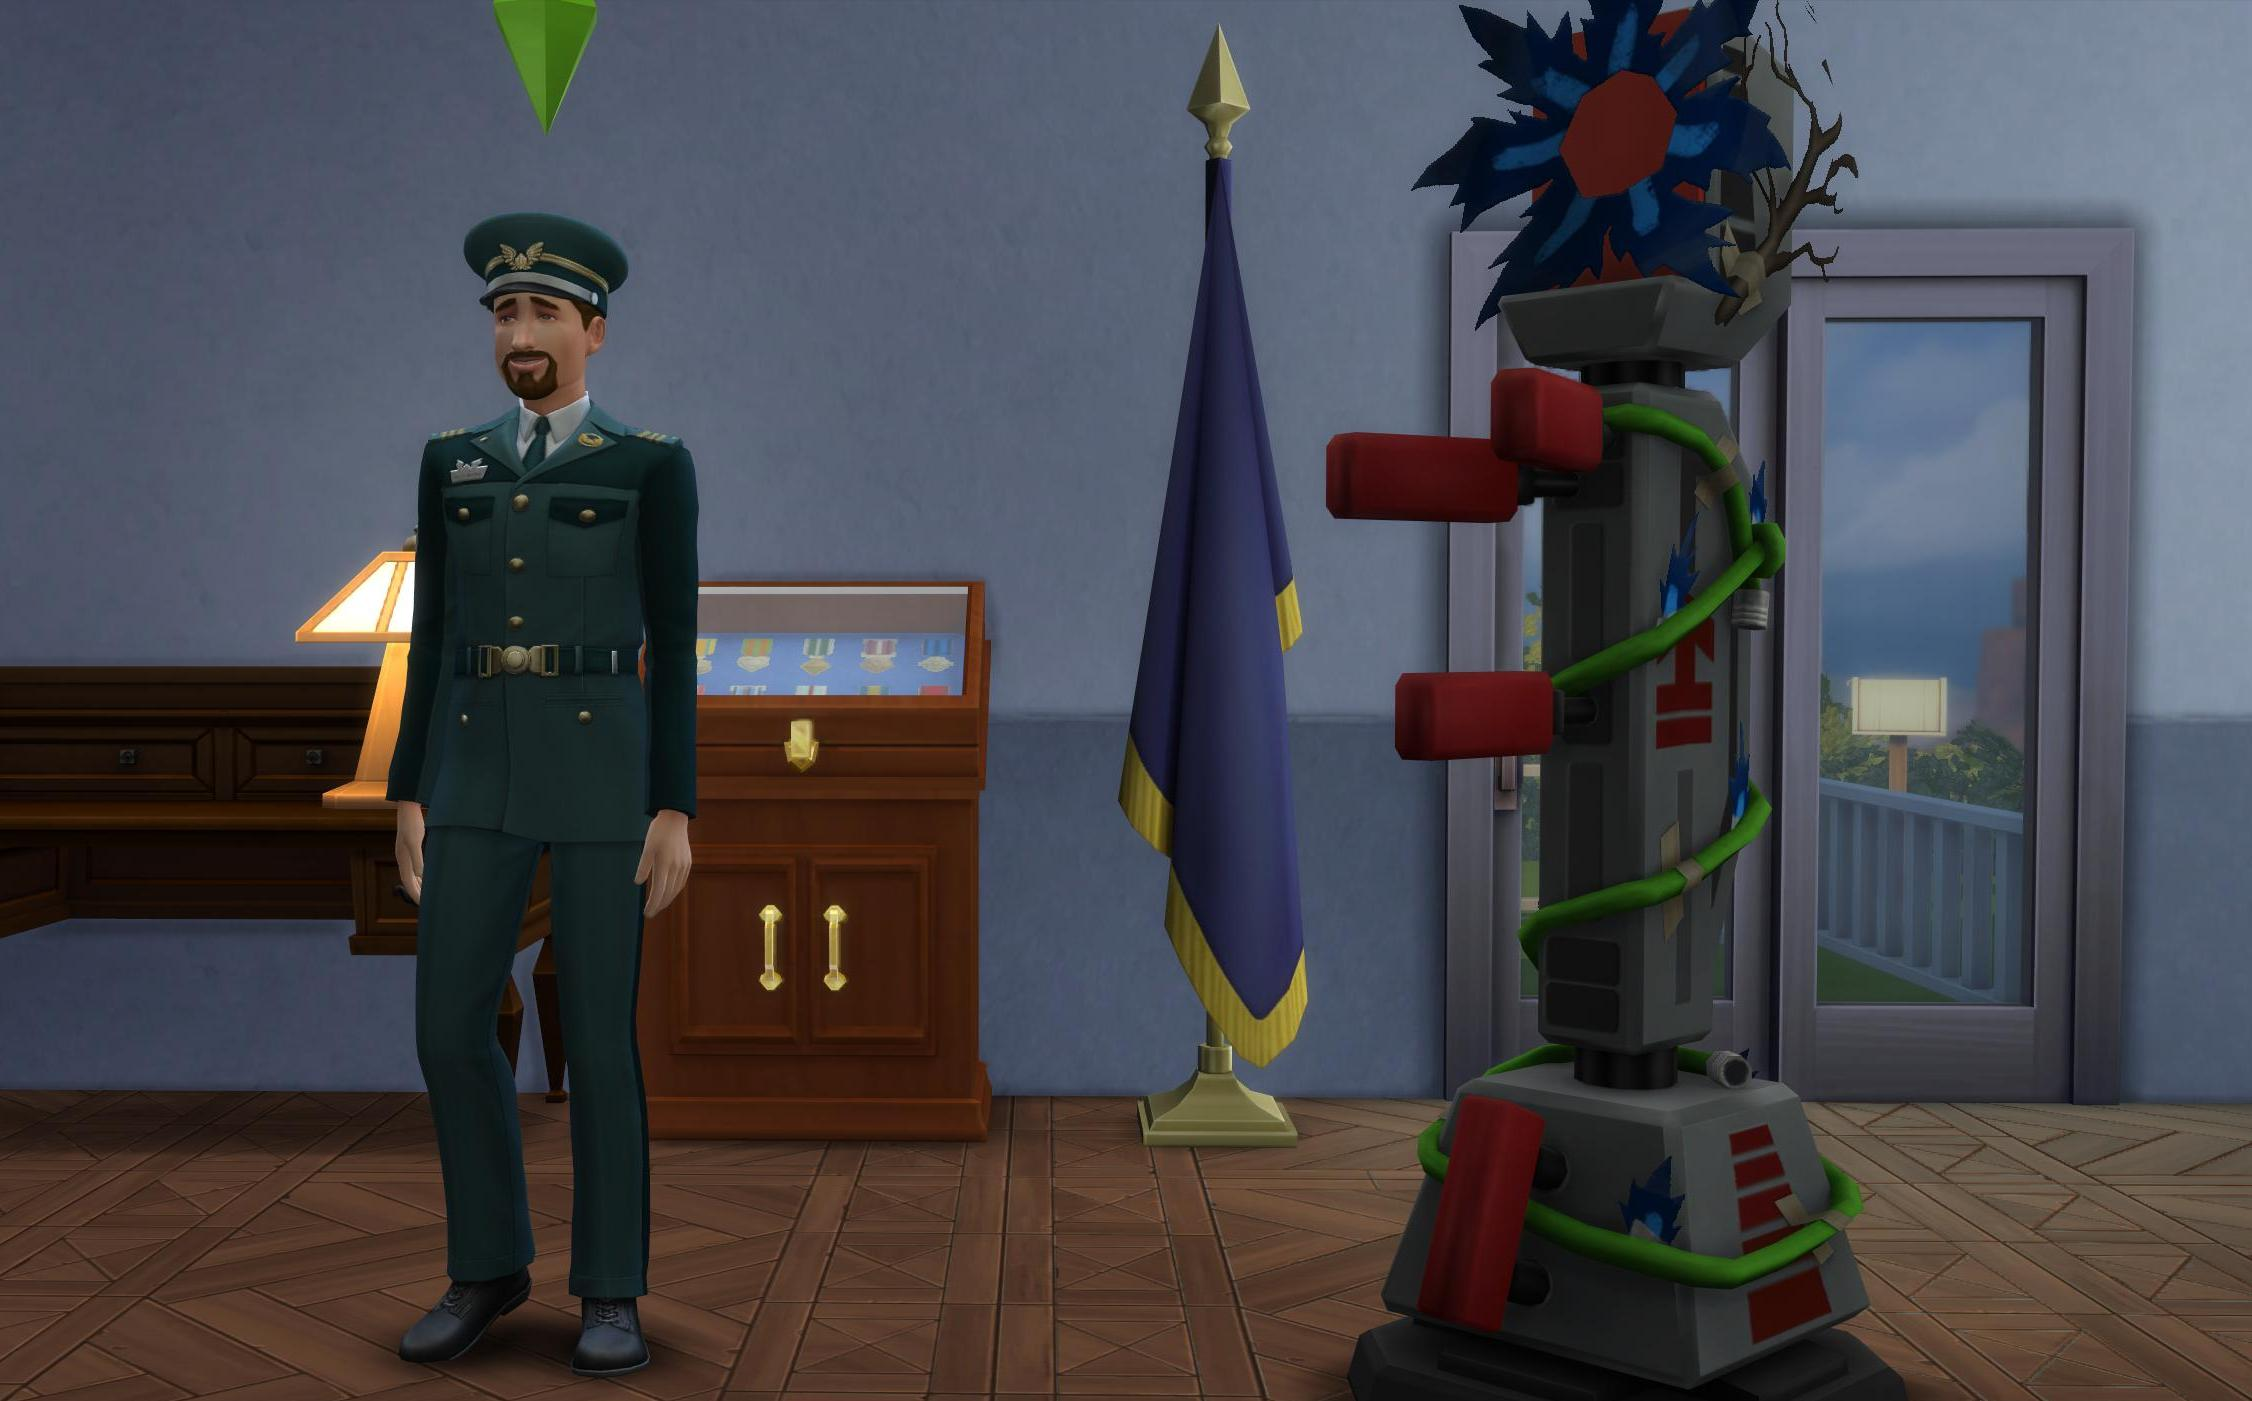 Military Career Officer Rewards in The Sims 4 StrangerVille Game Pack